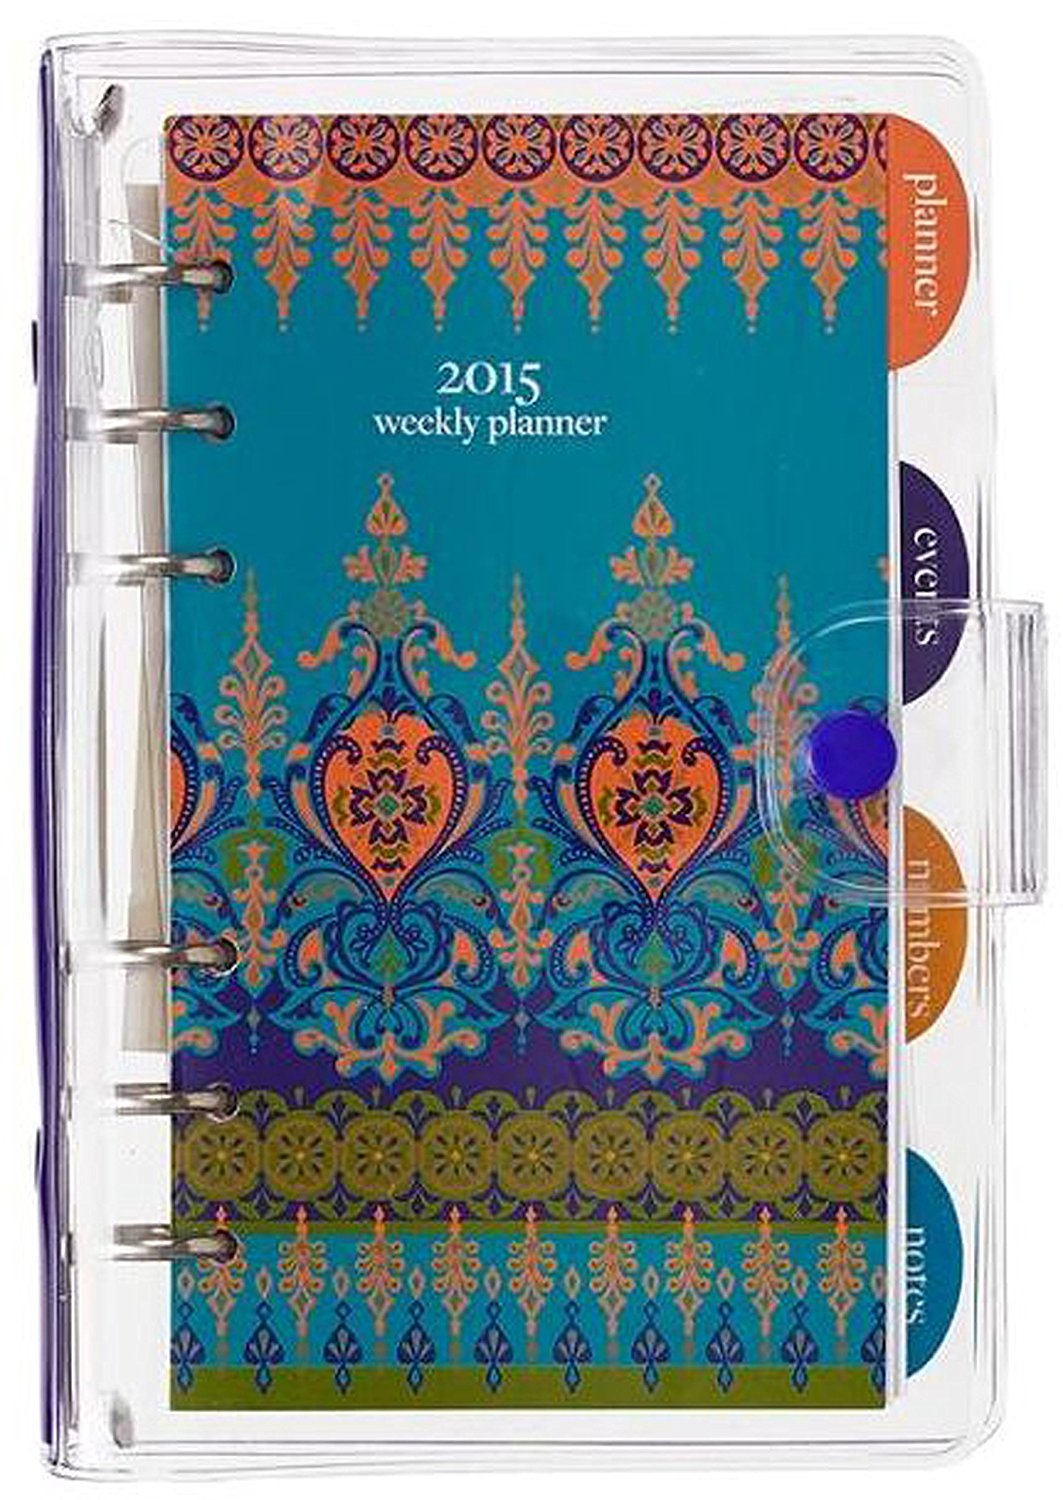 2015 Vinyl Moroccan Borders Weekly Engagement Calendar/Planner (18-month Planner Covering July 2014 - December 2015)